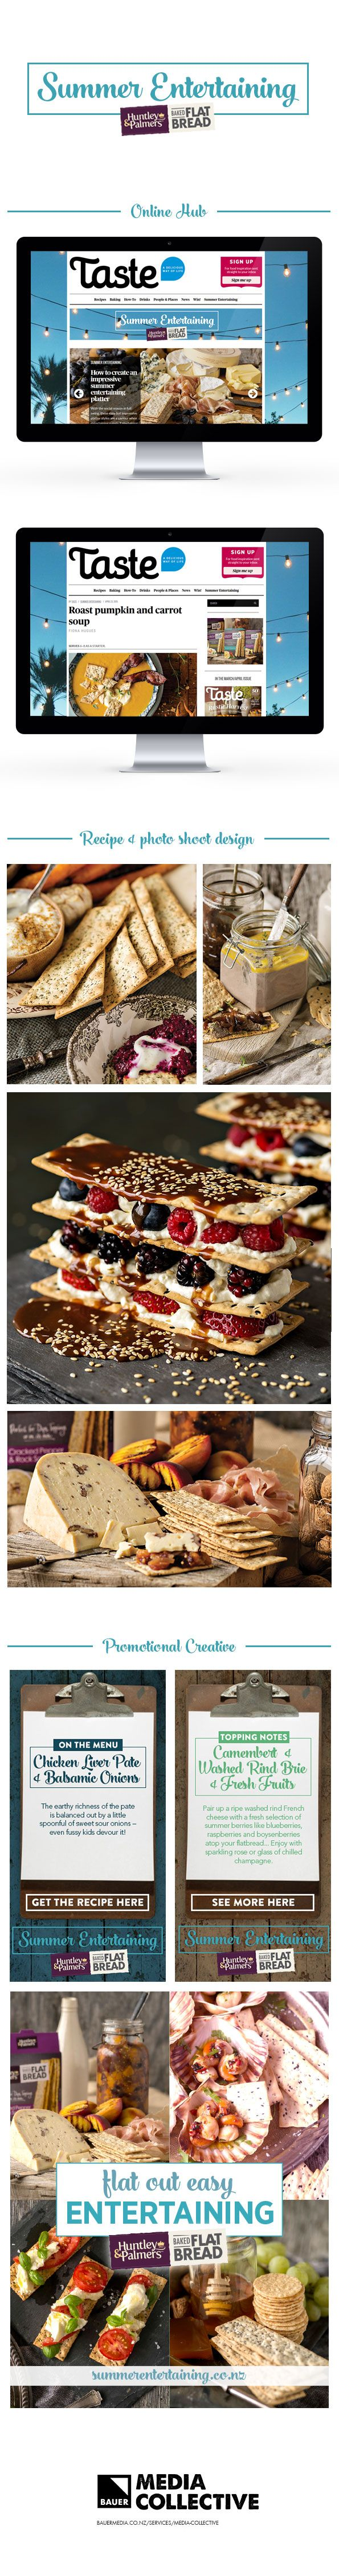 Summer Entertaining for Huntley & Palmers Flatbread. An online hub filled with summer time recipes and creative ideas for table settings and drinks. Digital design and content creation by Media Collective